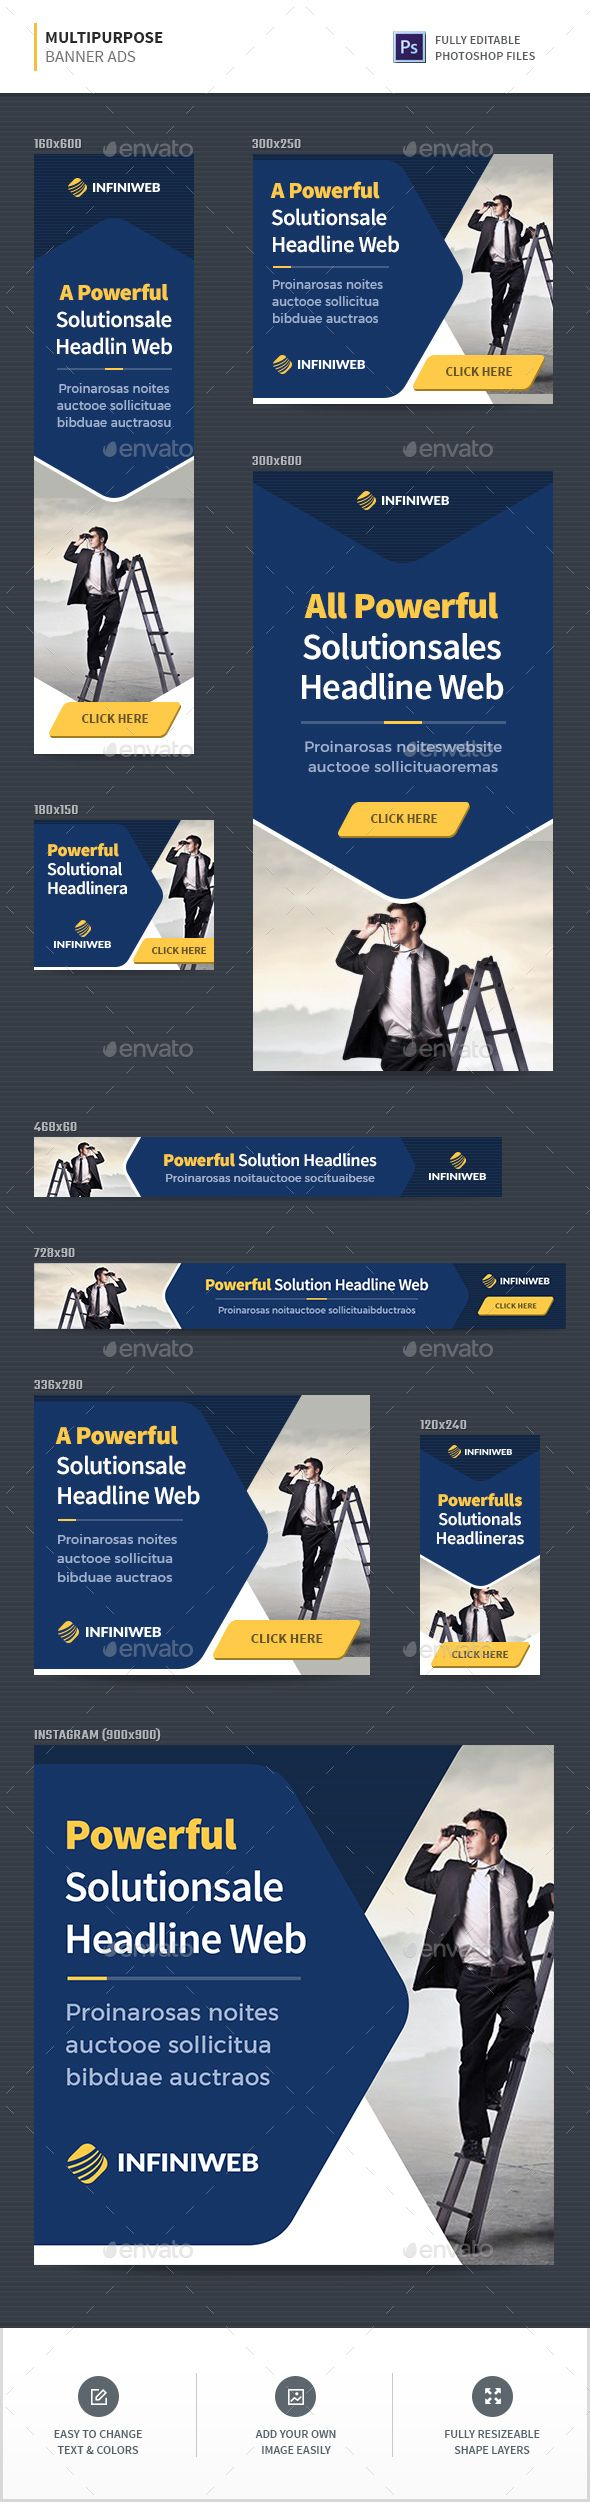 Multipurpose Banner Ads  Multipurpose Web Advertisement Banners Web banner ad templates in 9 most popular sizes! Item Features:      Fully layered and organized     Easily modify colors, text and image     Free fonts used  What's Included?      9 Popular Sizes : 160×600, 300×250, 336×280, 728×90, 468×60, 300×600, 180×150, 120×240, 900×900     9 Photoshop (.PSD) Files     Instruction File